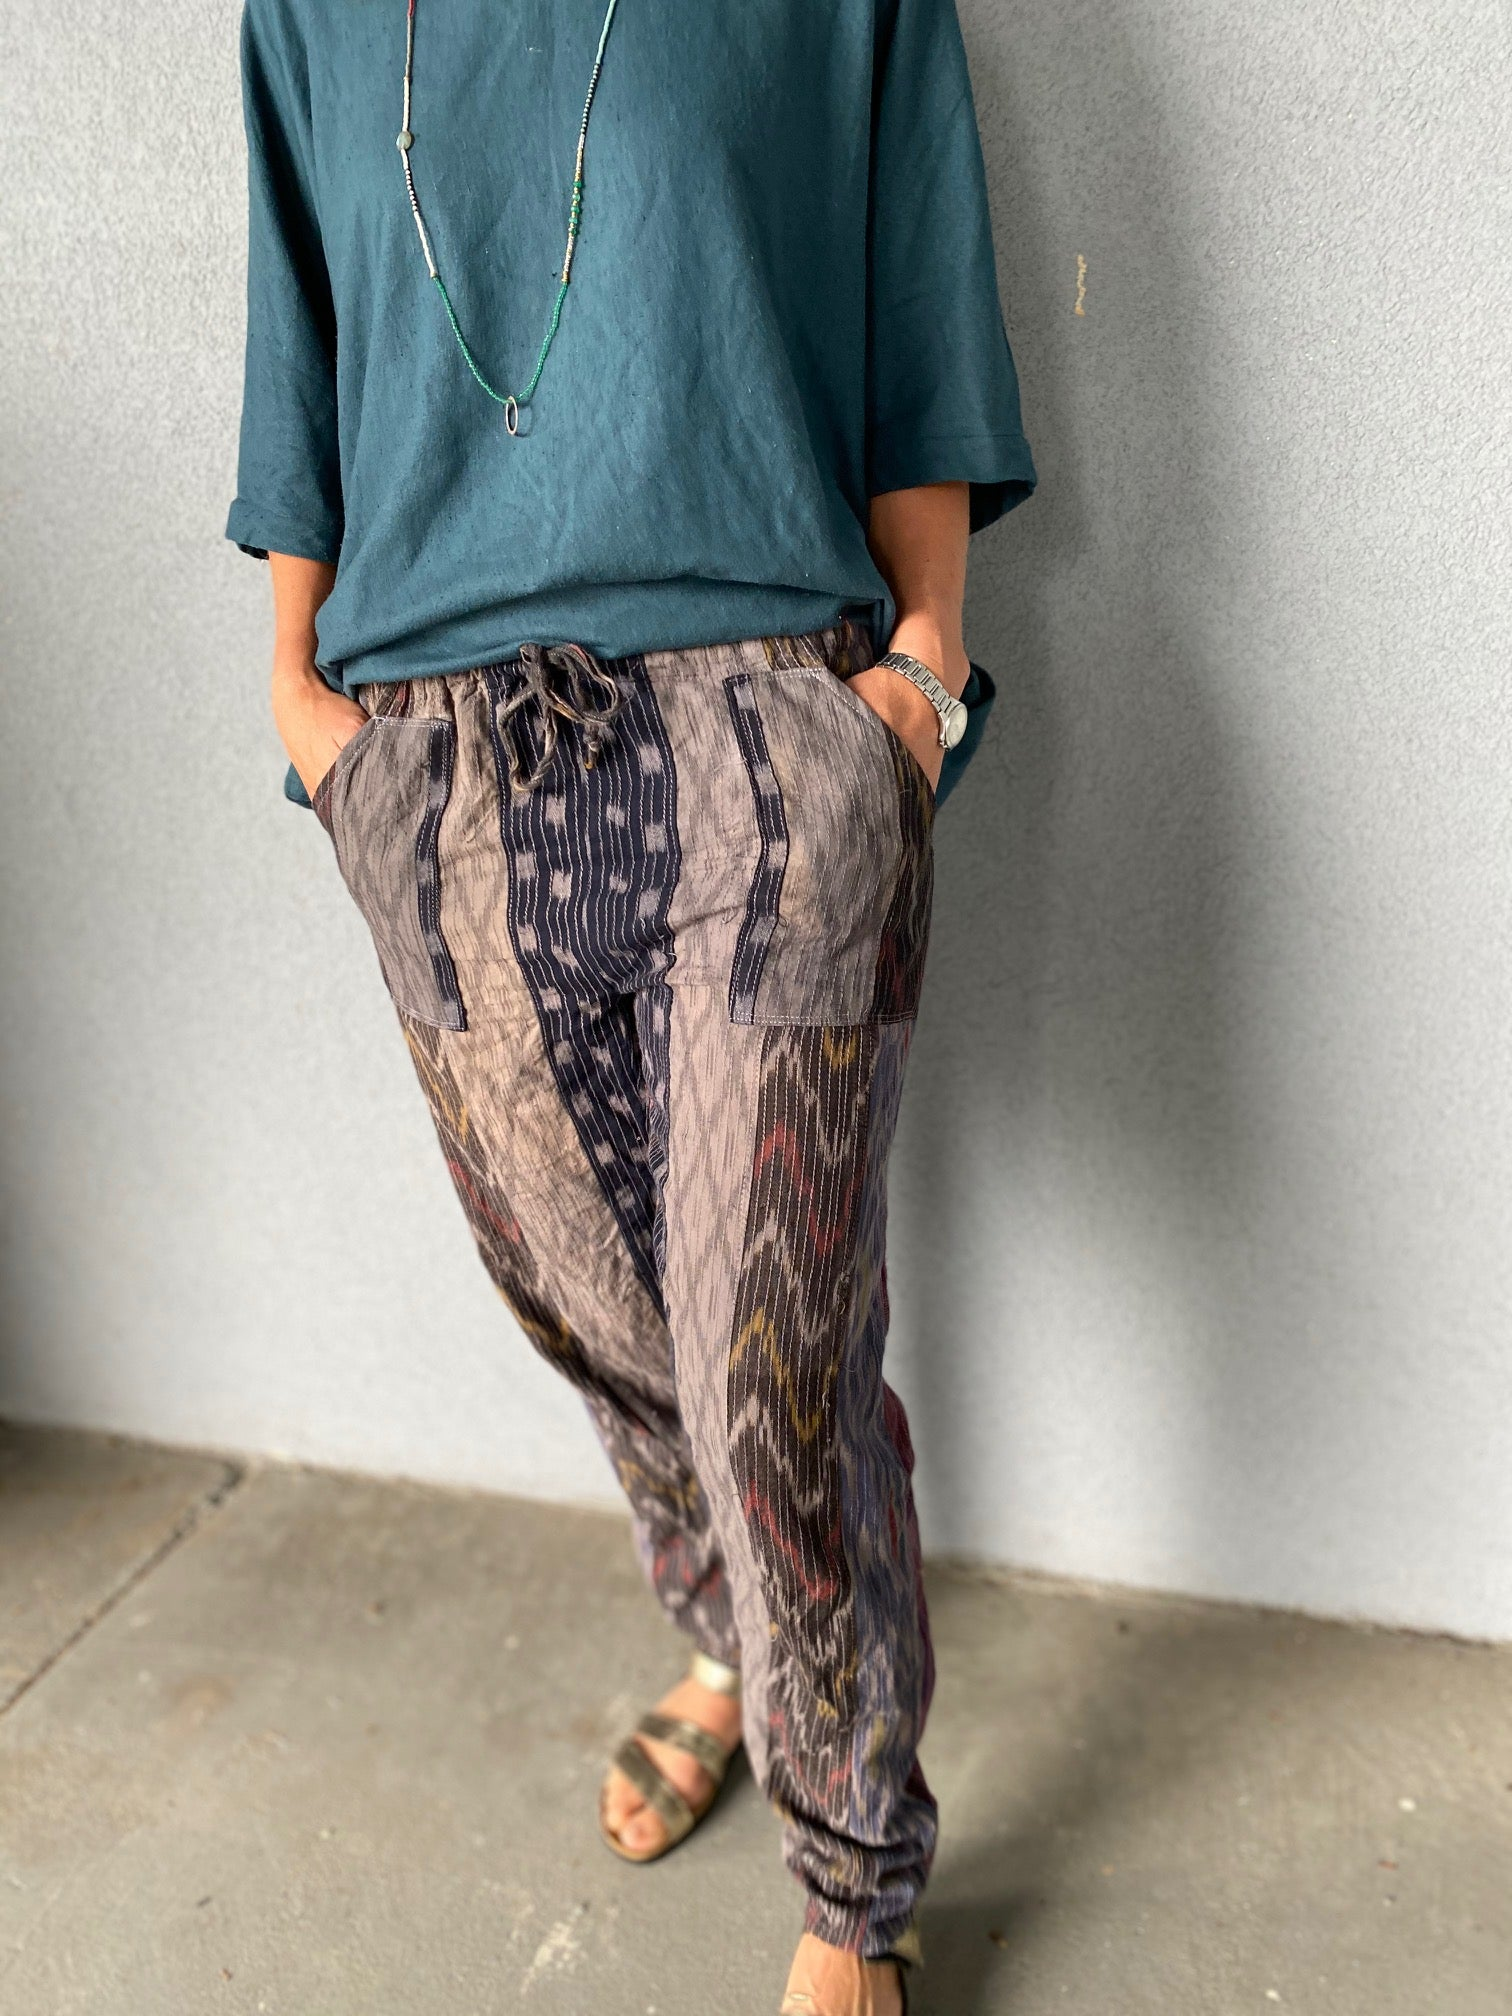 Bottom half of woman wearing ikat pants, hands in pockets, teal top.